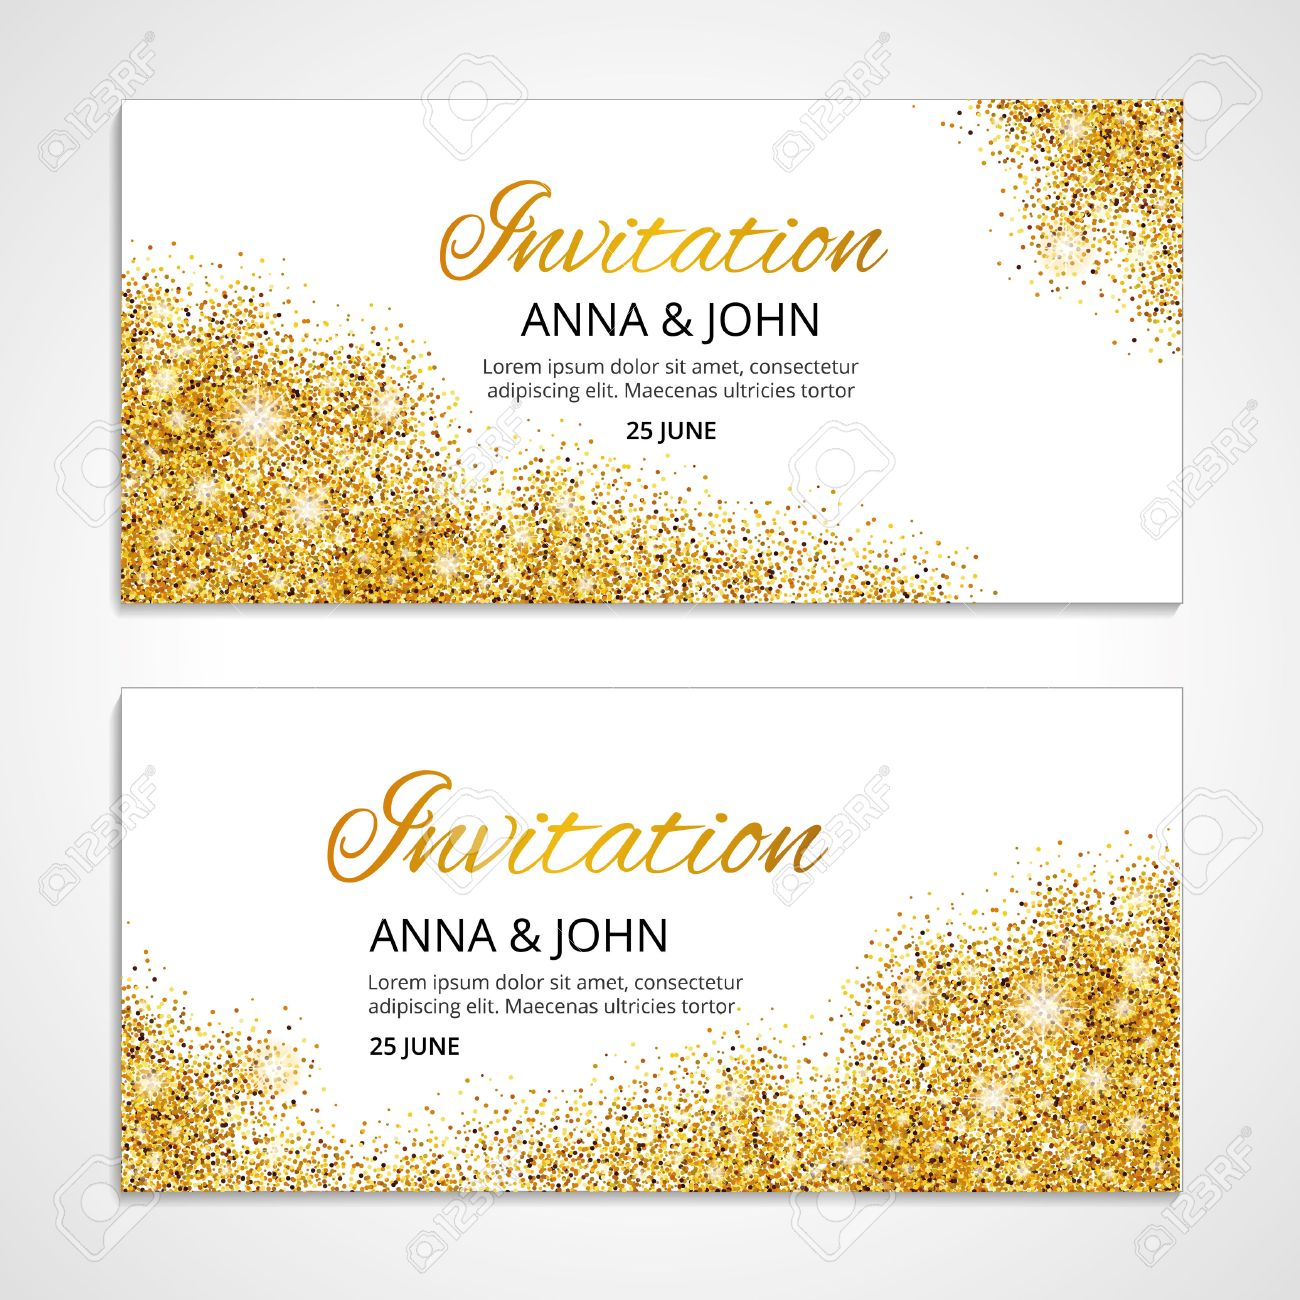 Gold Wedding Invitation For Wedding Background Anniversary